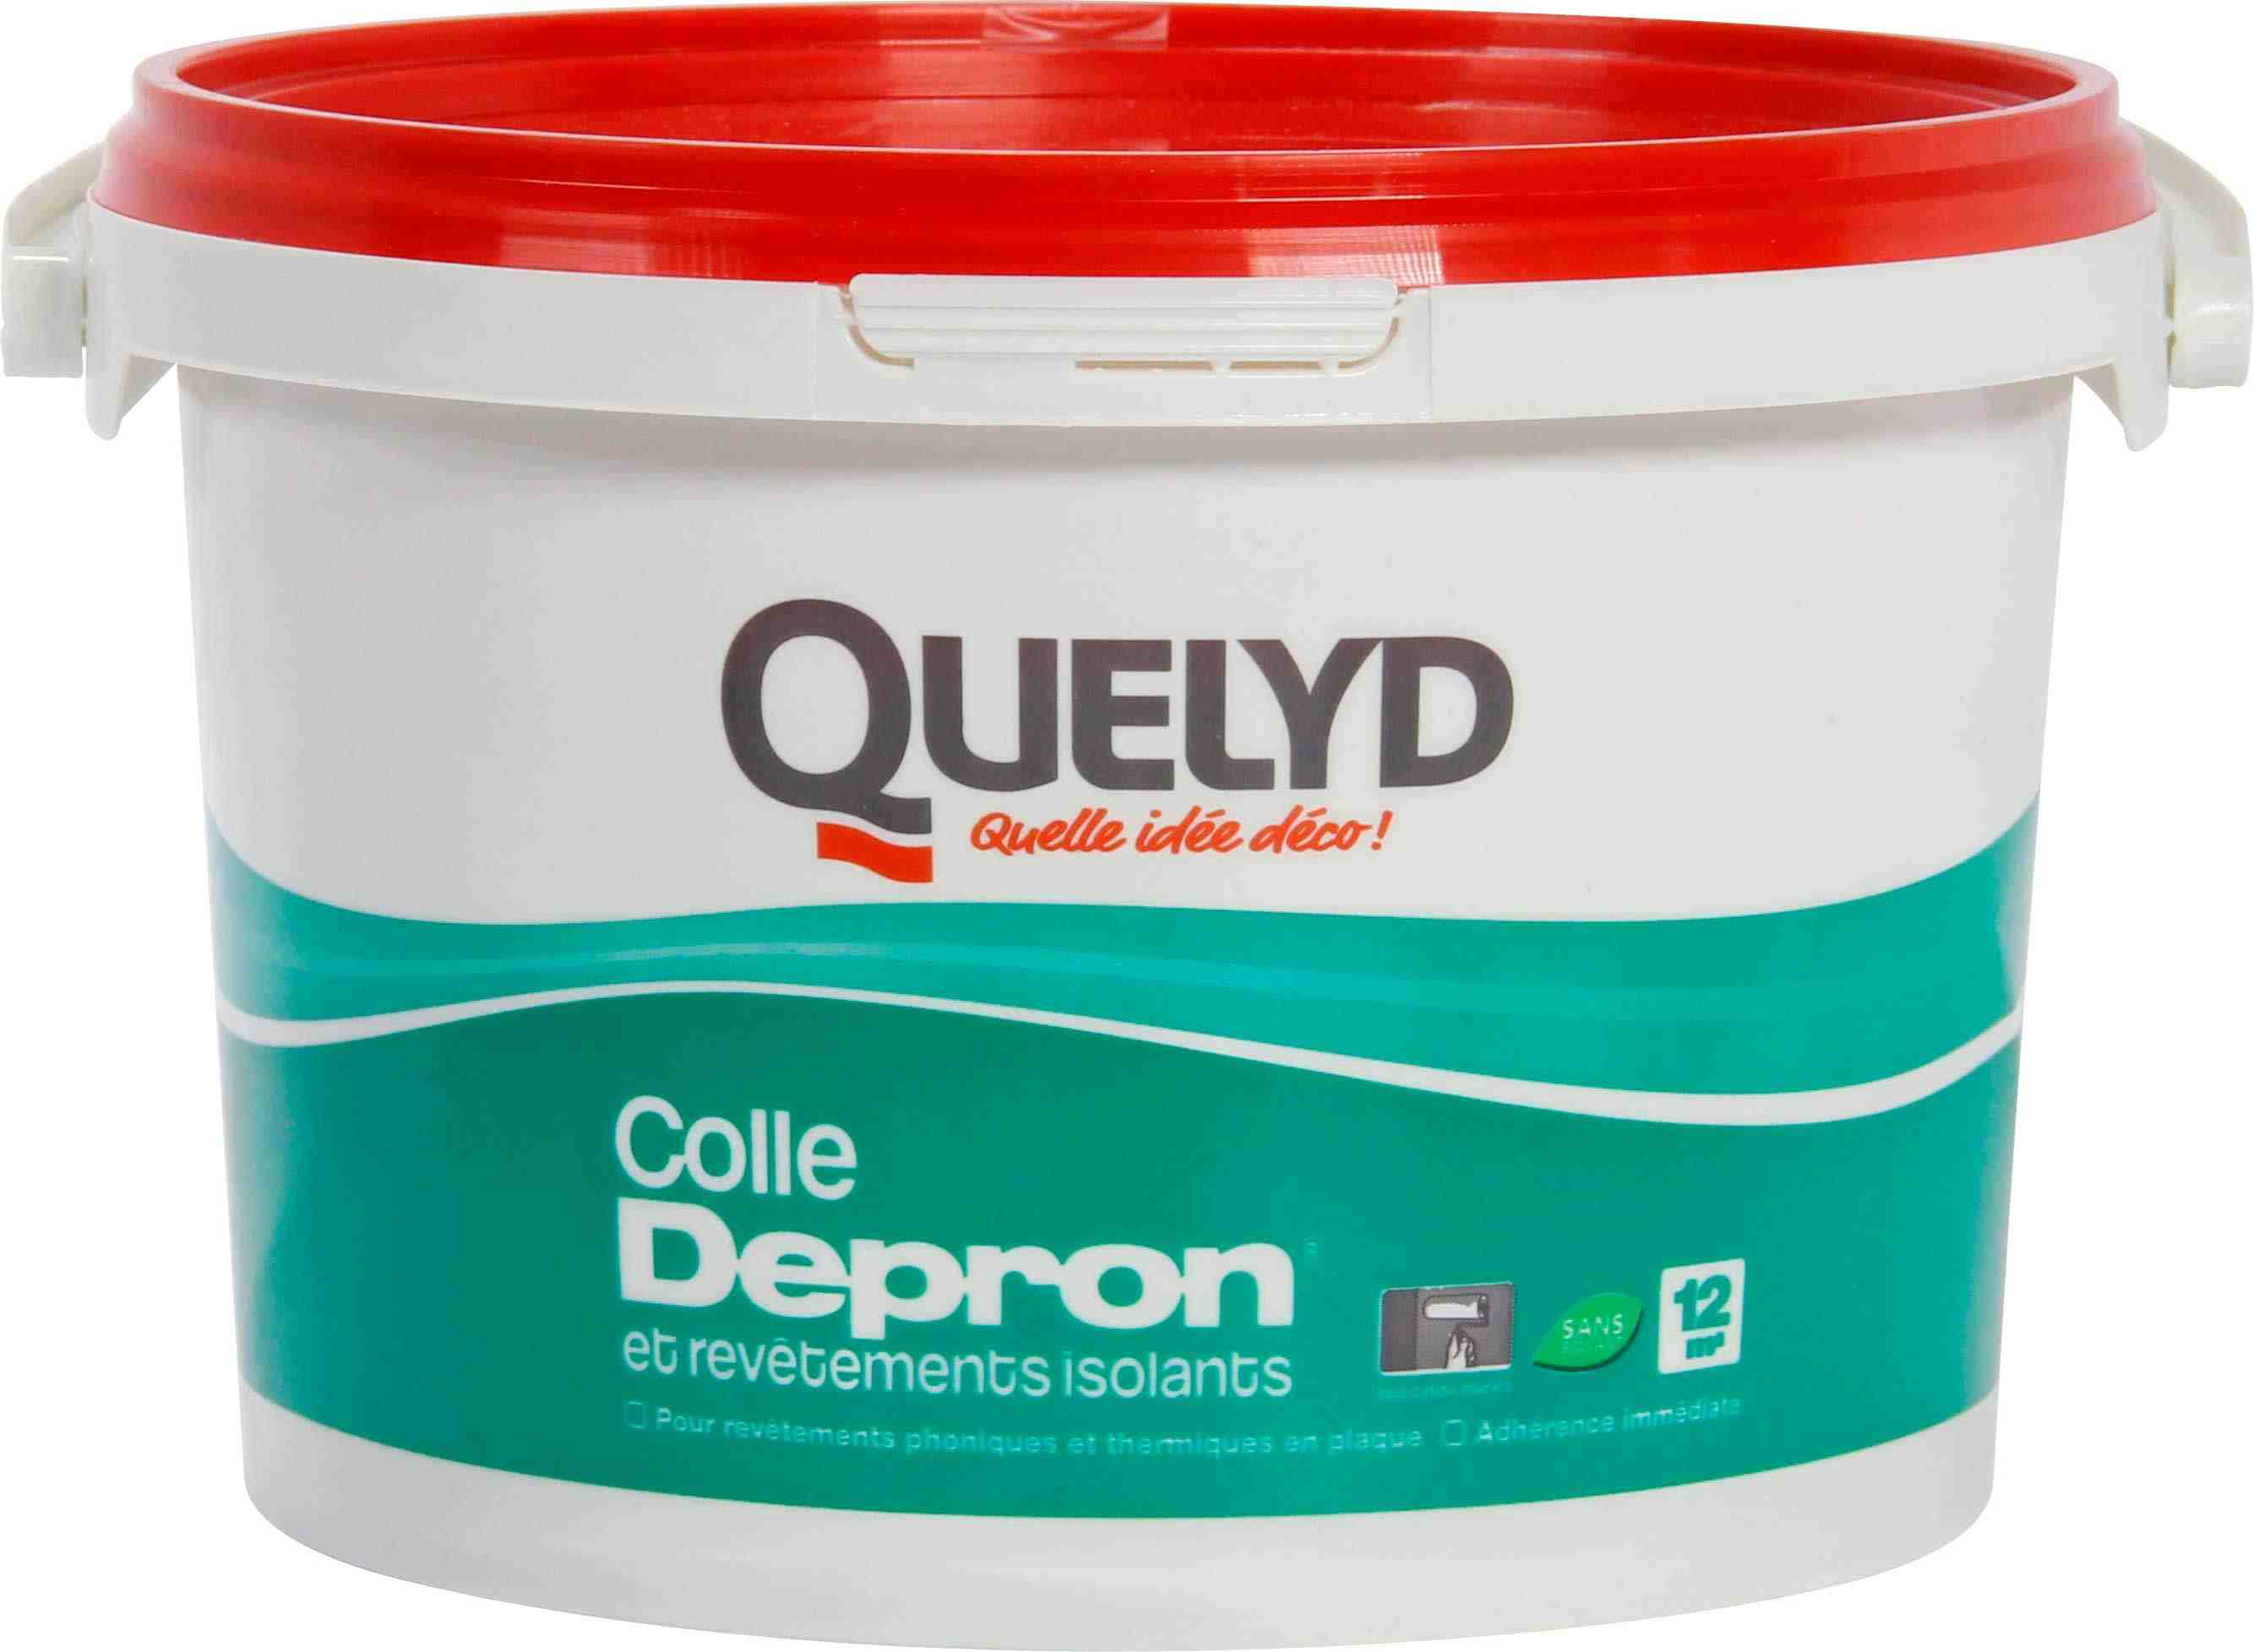 Colle pour isolant Dépron Quelyd